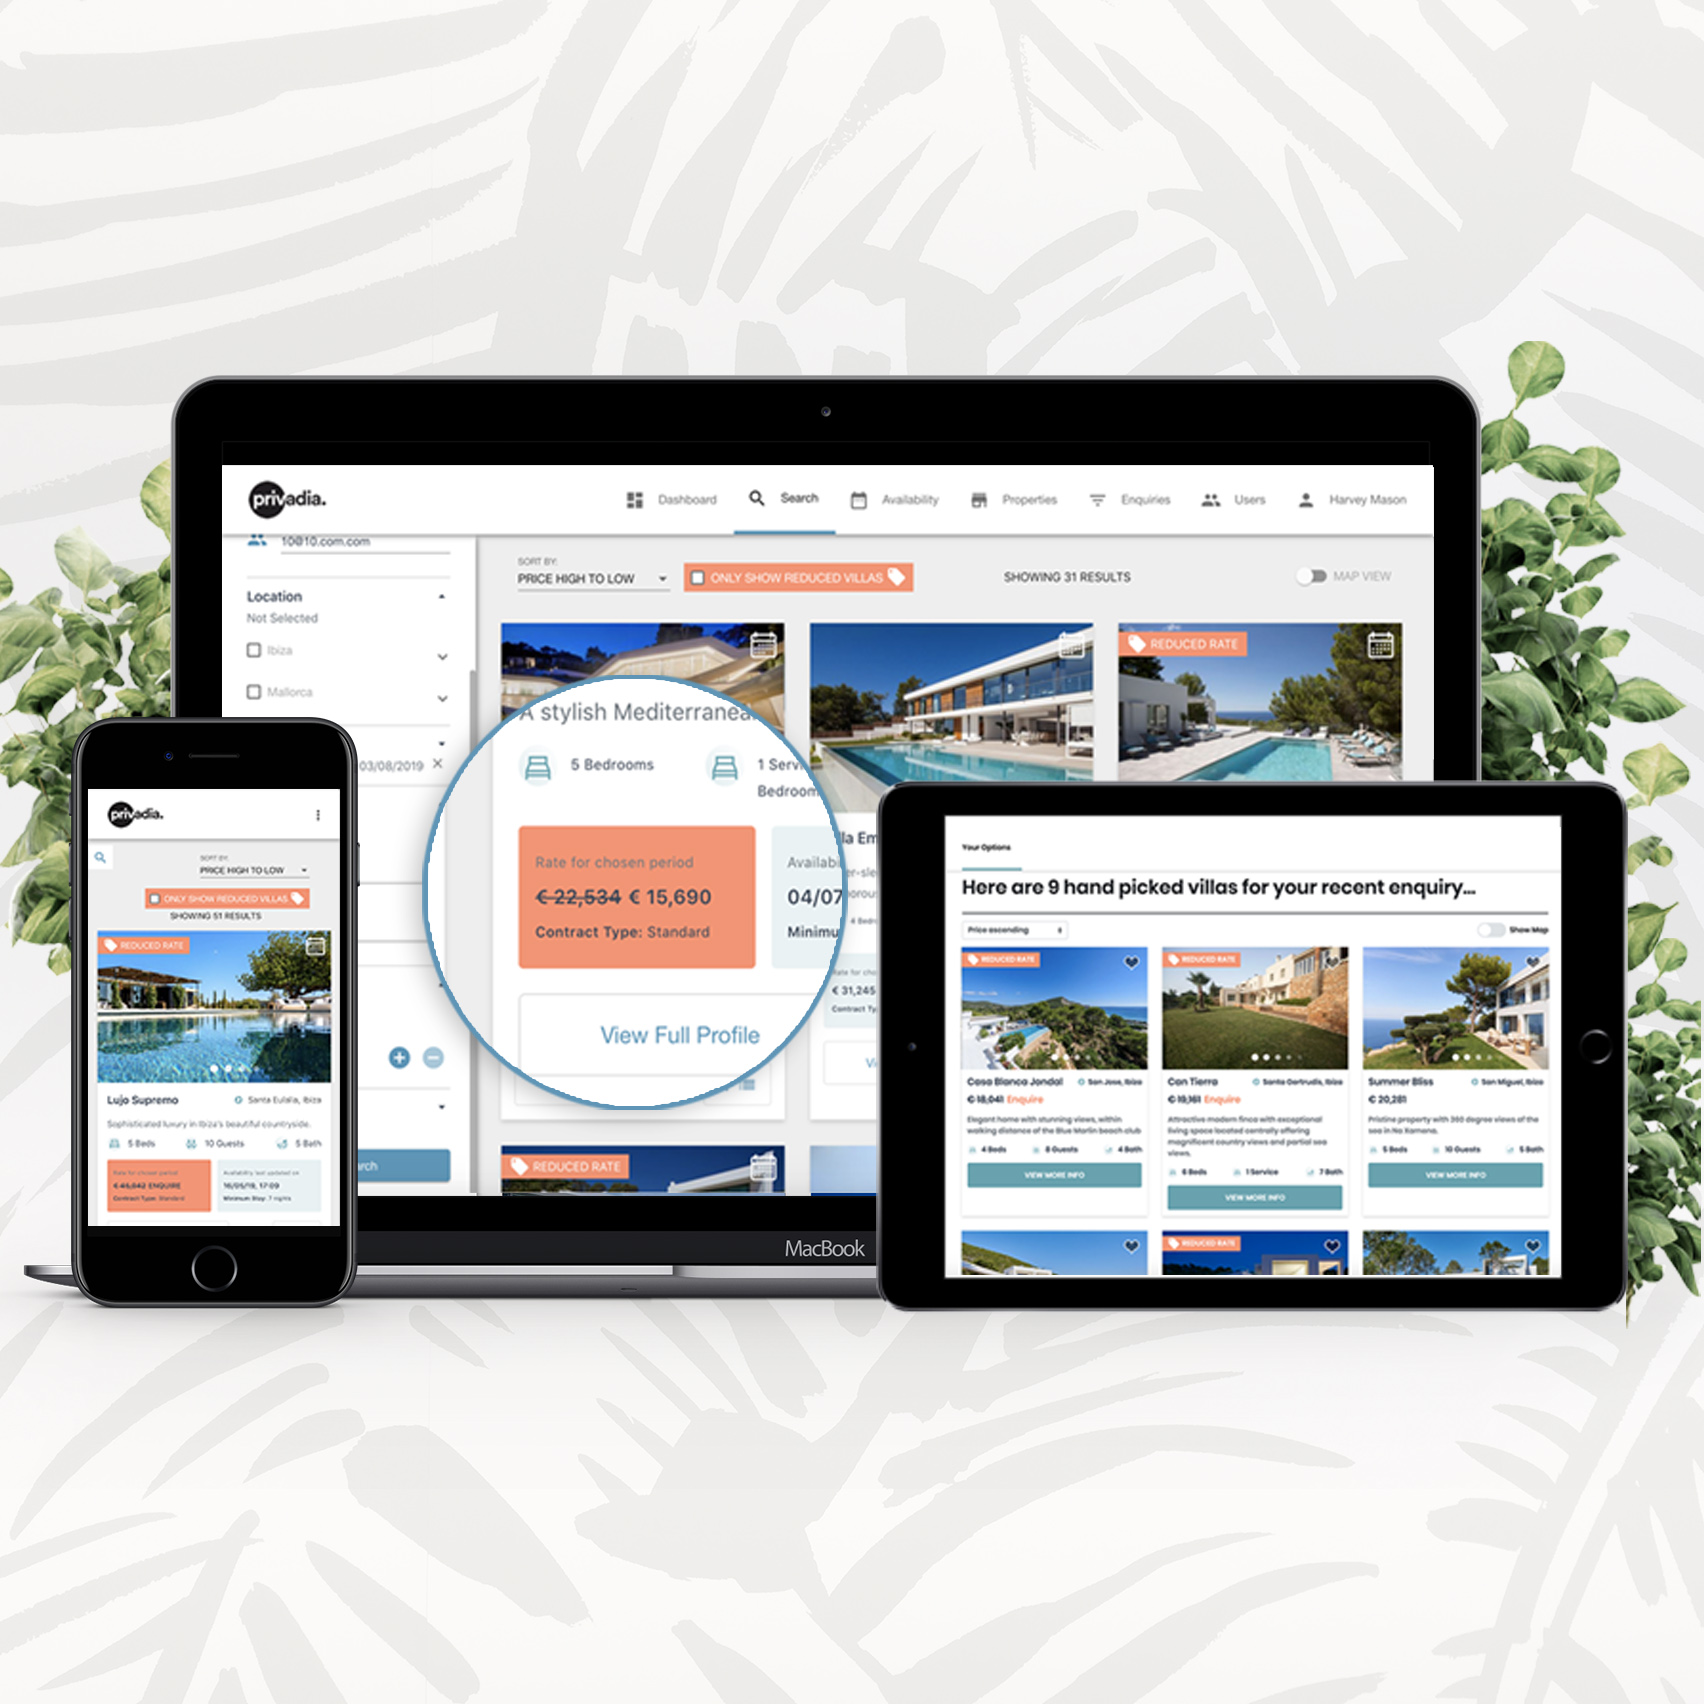 Rolled out our Agency Portal to our luxury travel partners around the world.